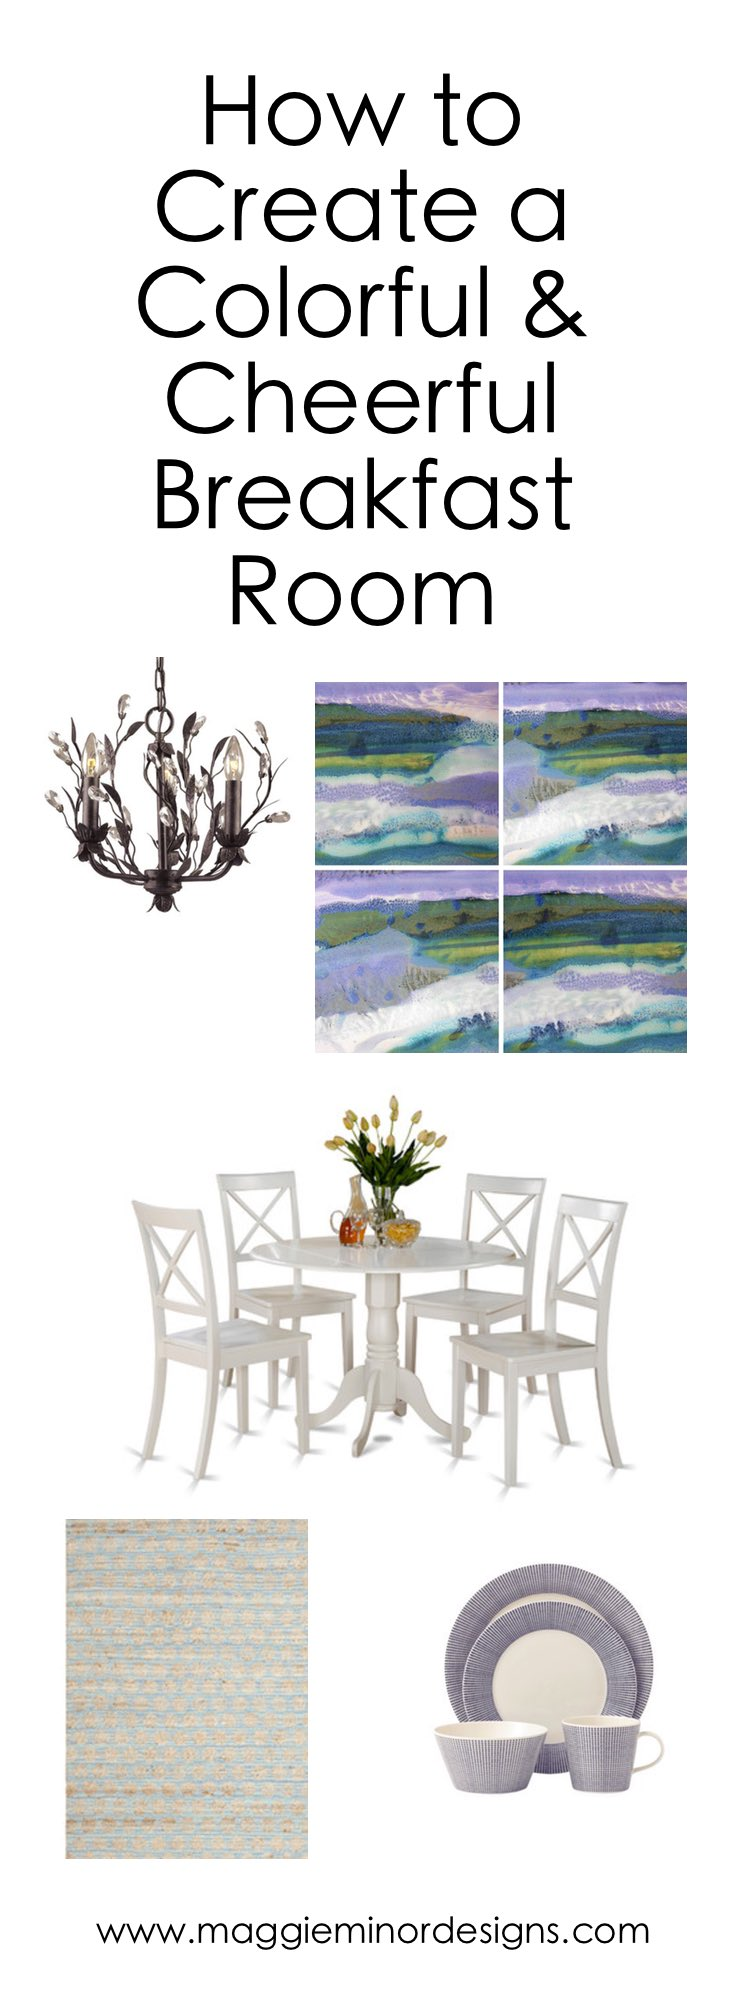 How to Create a Cheerful & Colorful Breakfast Room Pinterest.png